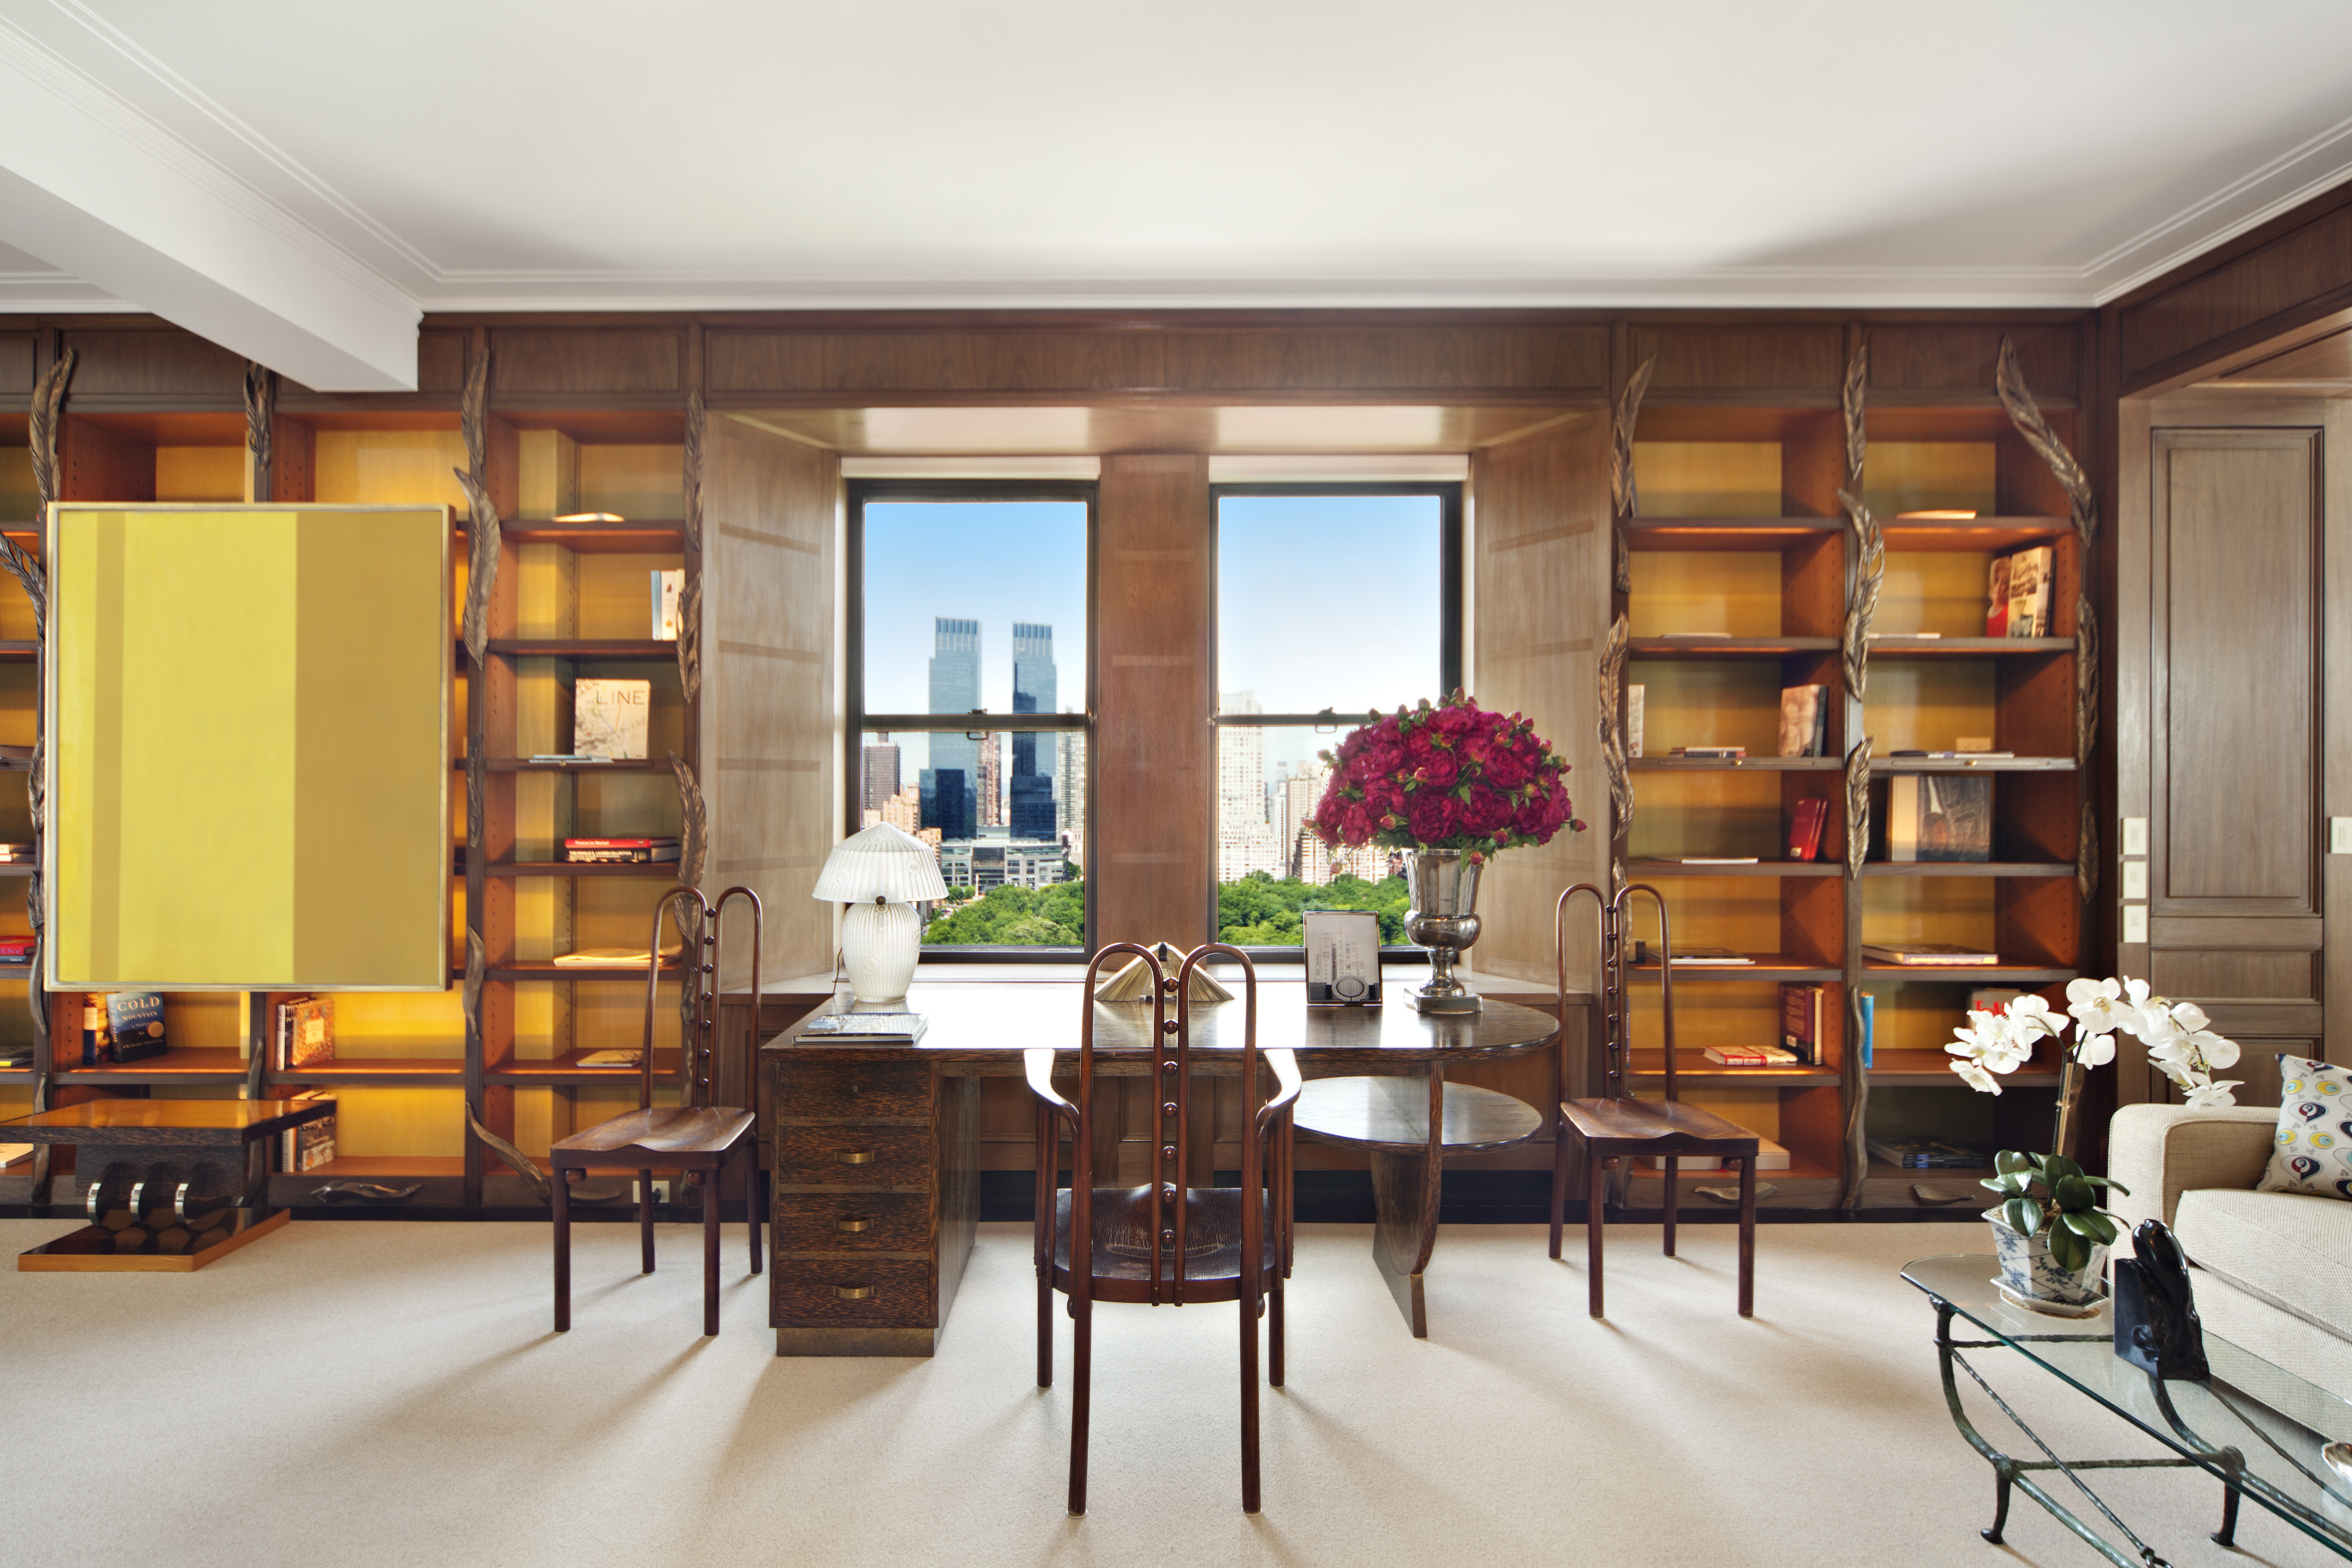 795 Fifth Avenue  $[@RoomNumber|Room @RoomNumber] Upper East Side New York NY 10065